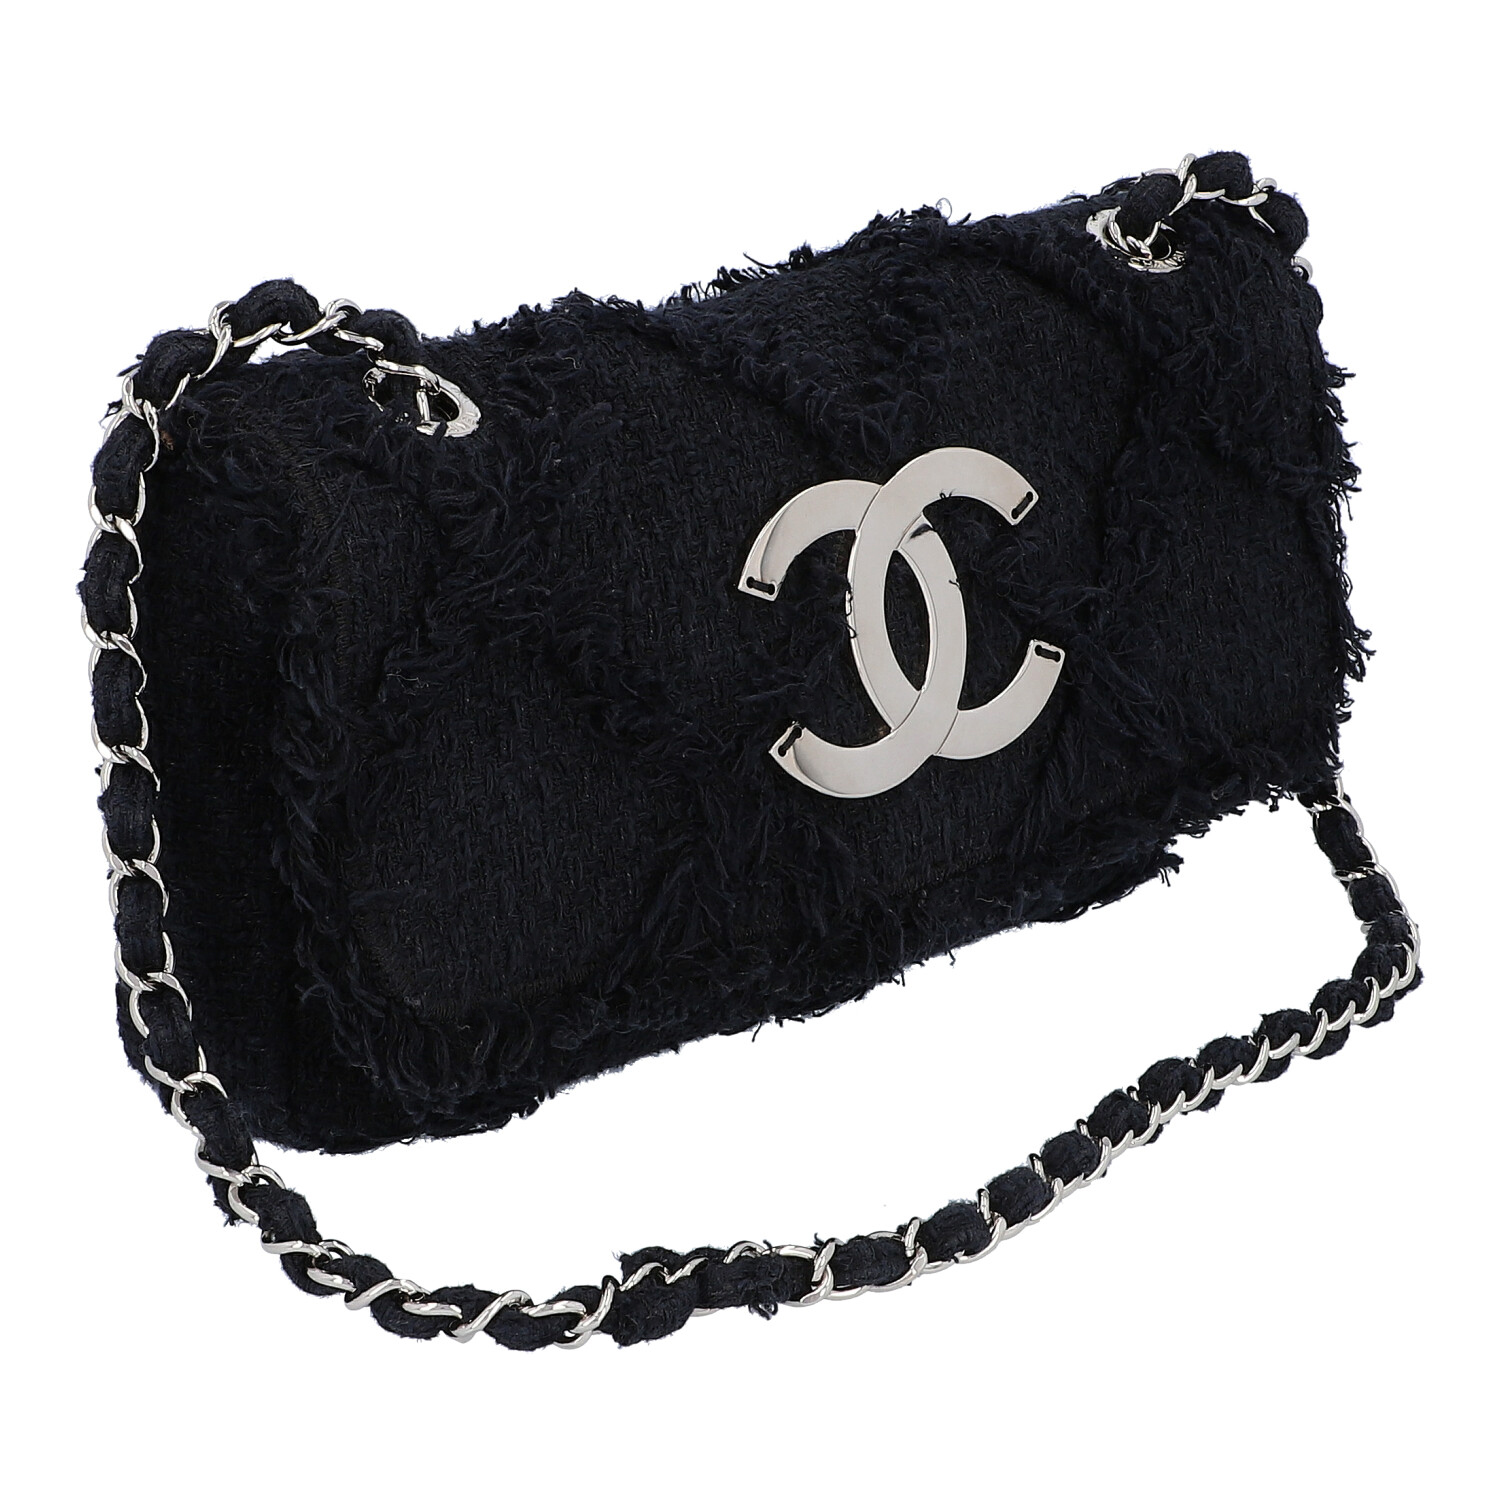 "Los 43 - CHANEL Henkeltasche ""SINGLE FLAP"", Koll.: 2009 - 2010, NP.: ca. 3.000,-€.Dunkelblauer Tweed mit"